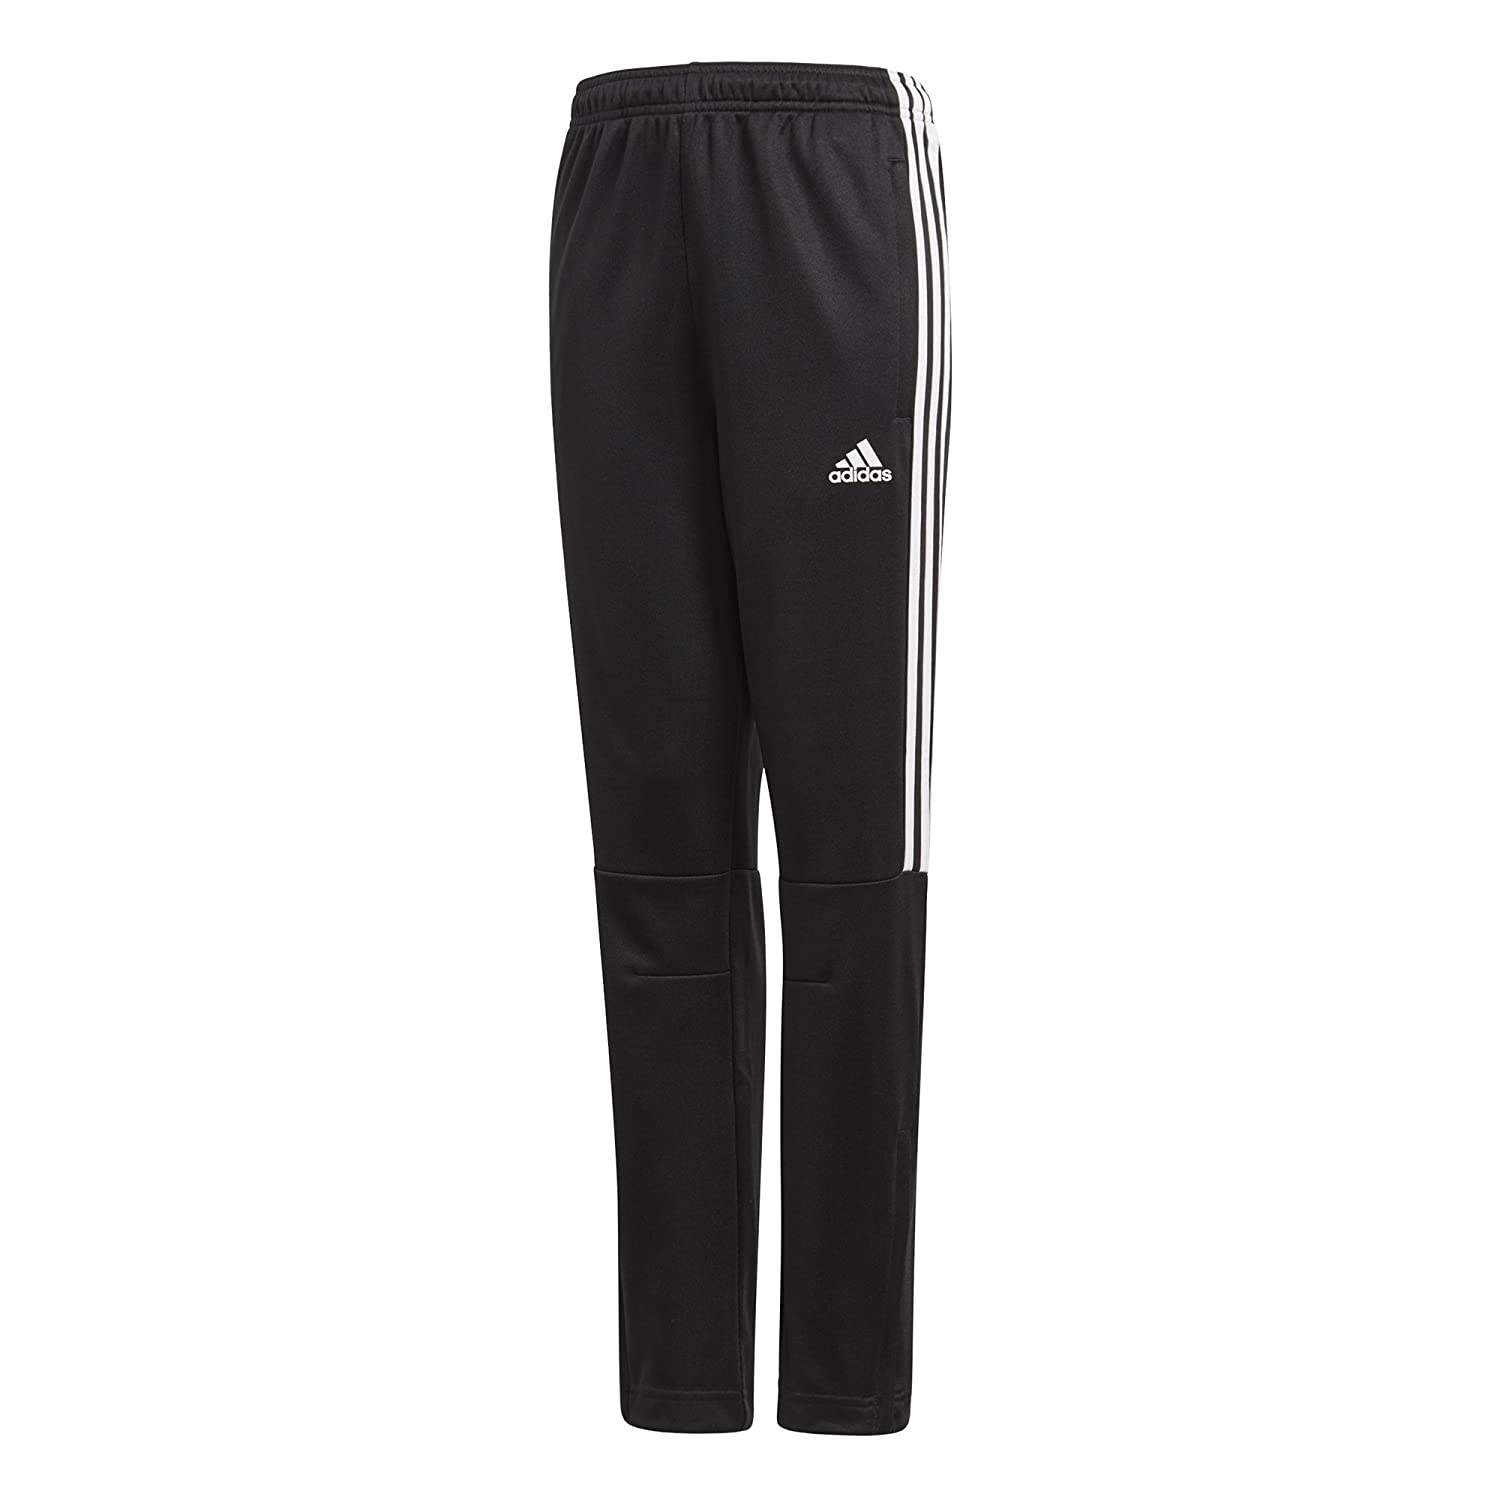 Adidas Boy's Tiro 3-Stripes Pants